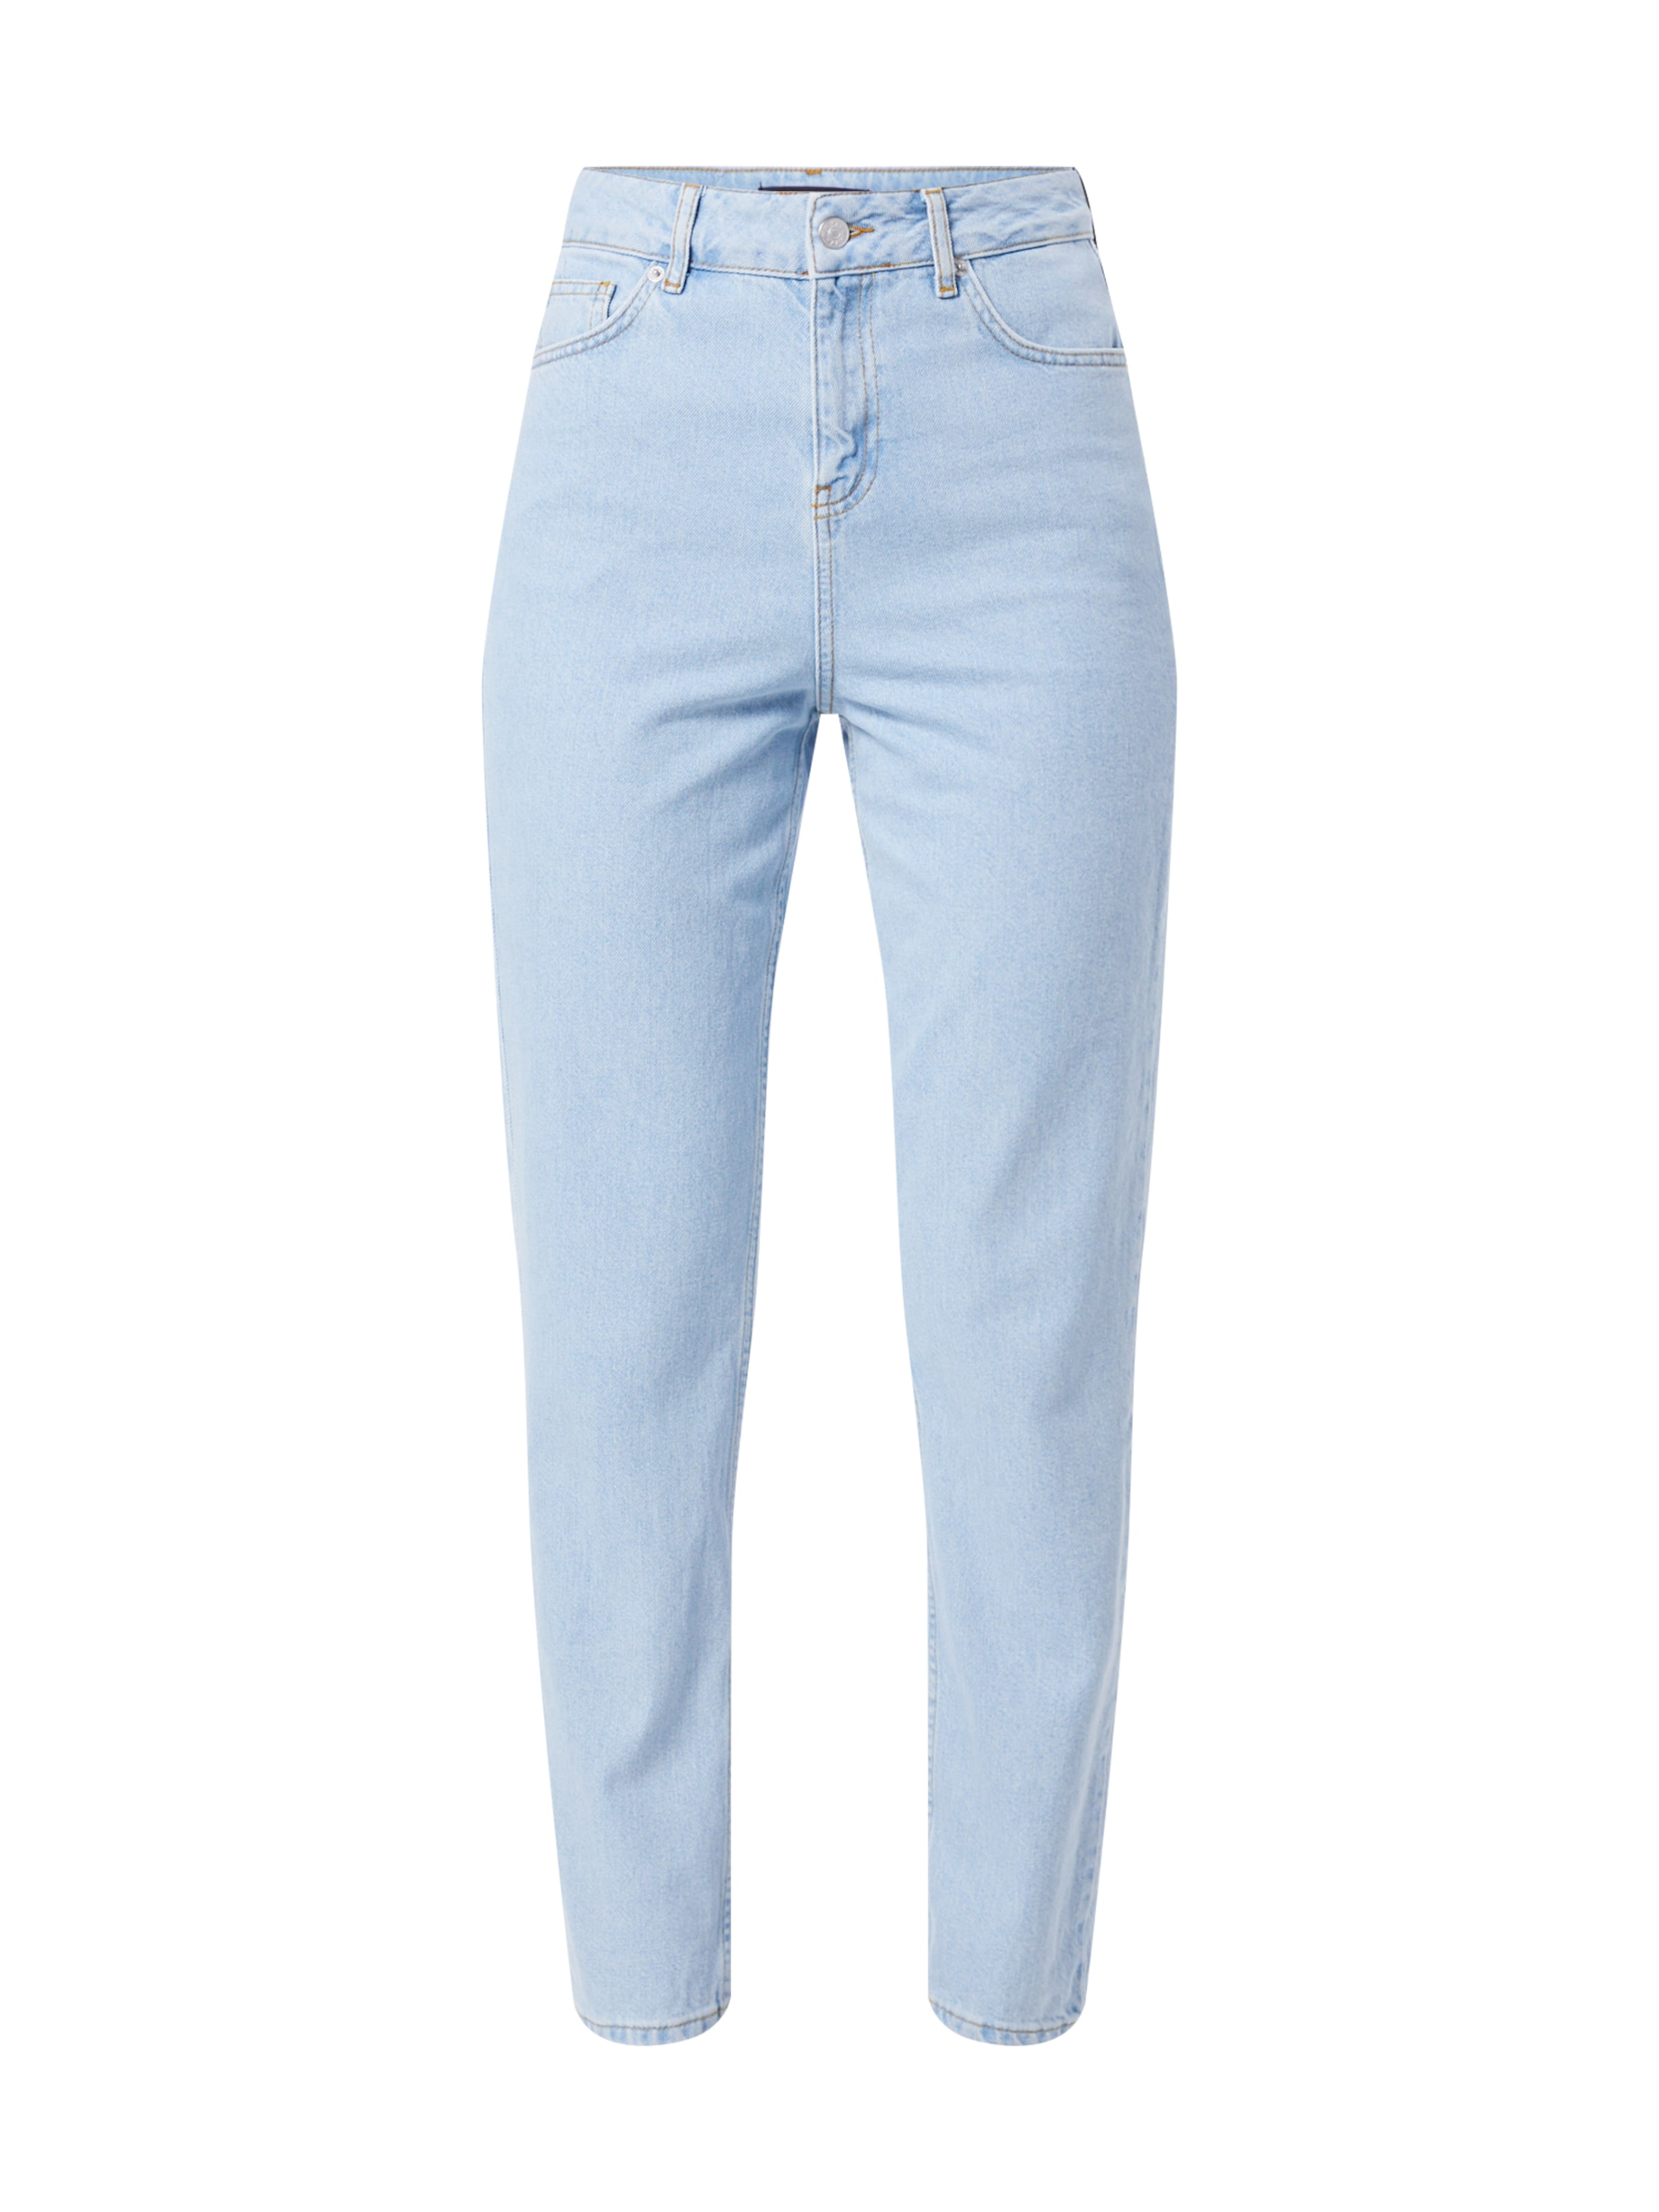 Why7 Jean Bleu En Denim 'dana' FcTKJul31